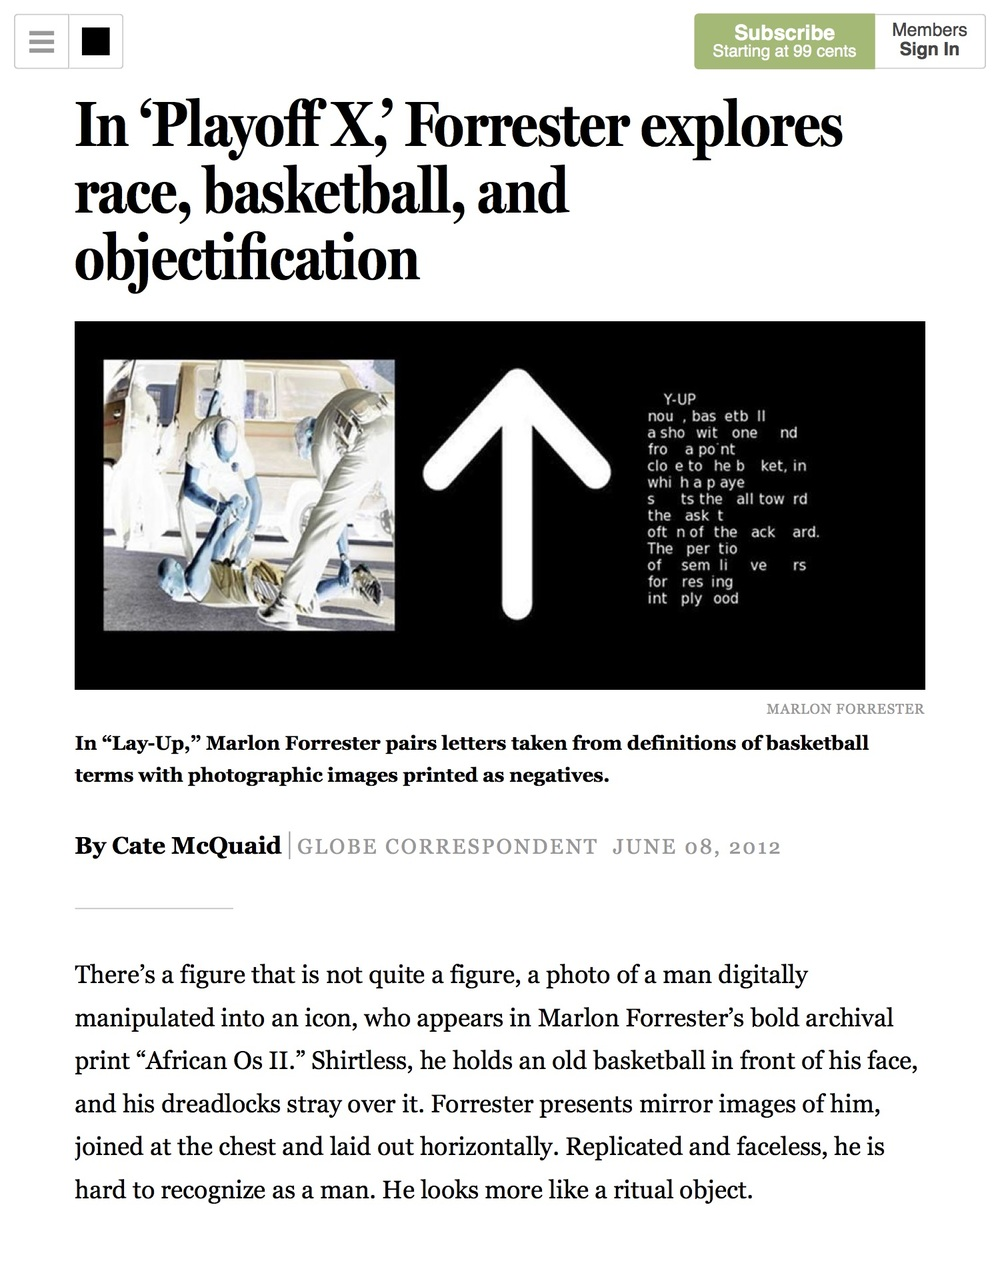 In 'Playoff X,' Forrester explores race, basketball, and objectification - The Boston Globe.jpg